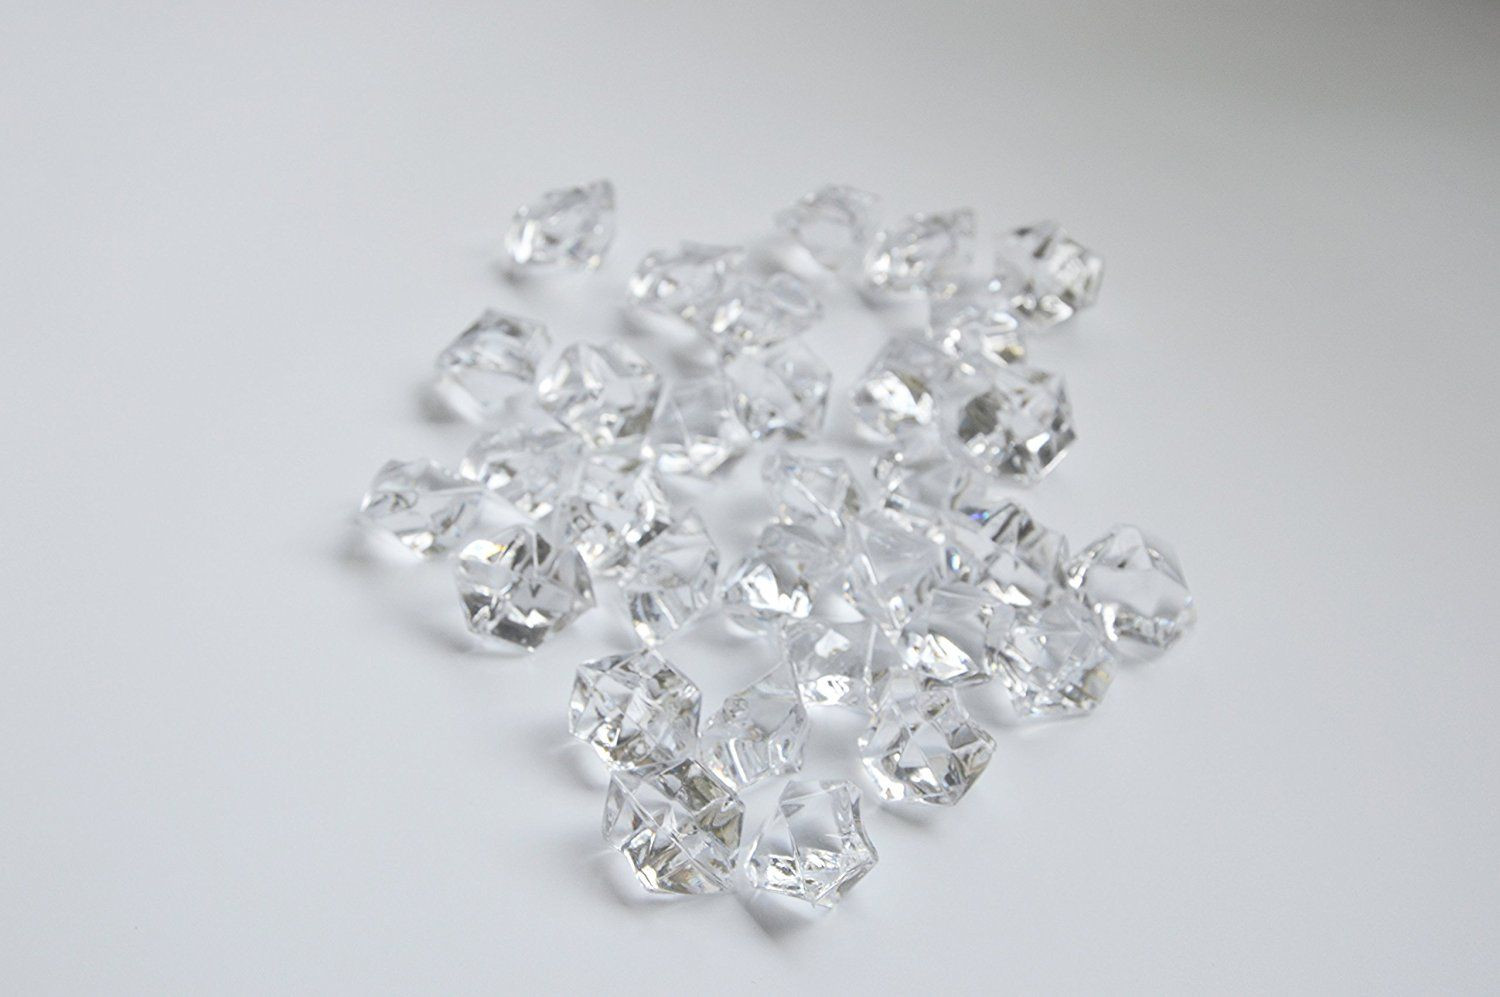 diamond vase filler of hotcandy hyaline acrylic diamonds for party wedding decoration vase inside hotcandy hyaline acrylic diamonds for party wedding decoration vase aquariam fillers 200 pcs